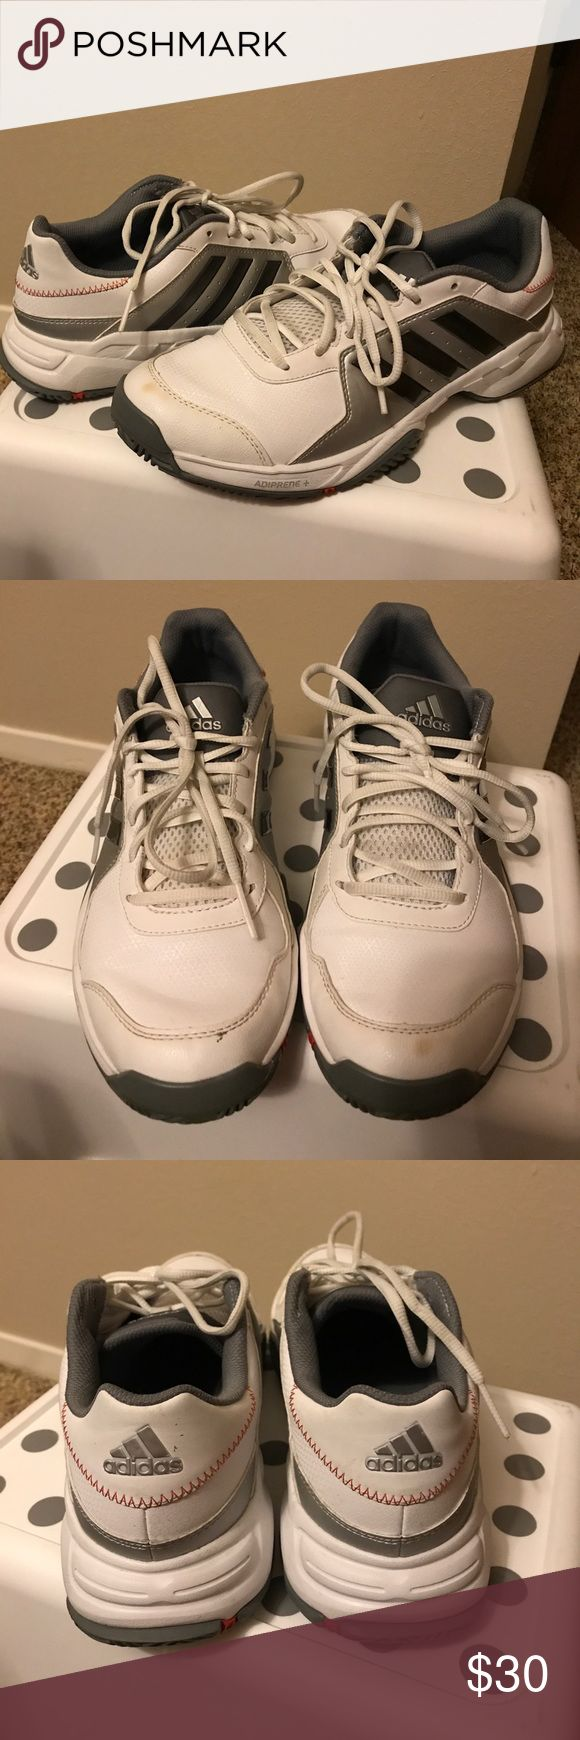 Adidas Adiprene+. Men #9 Adidas Adiprene+ for men #9. White with black/gray strips. Left one with a little tiny spot. Barely used. adidas Shoes Athletic Shoes